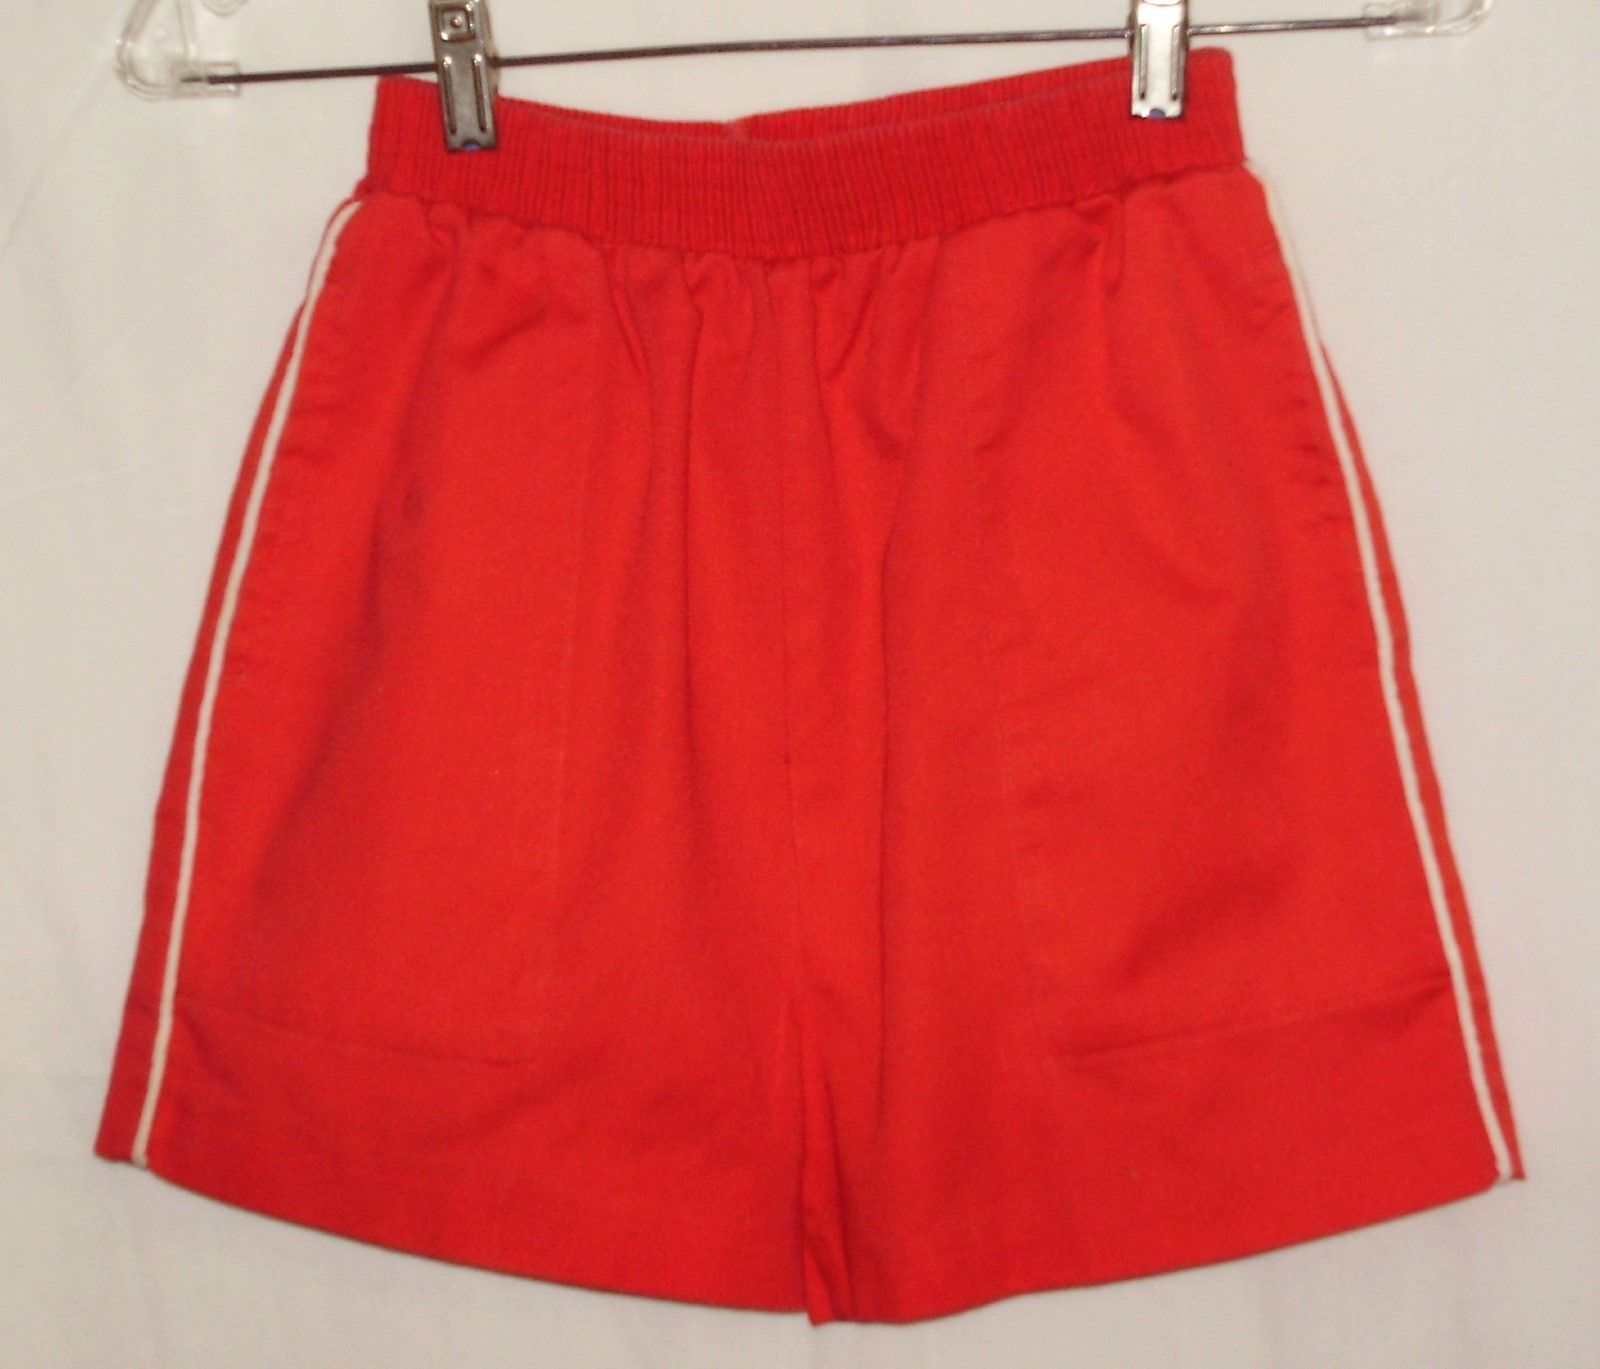 Primary image for Red shorts w/white side piping; 2 side-seam pockets, 1 button-close in back. 7-8